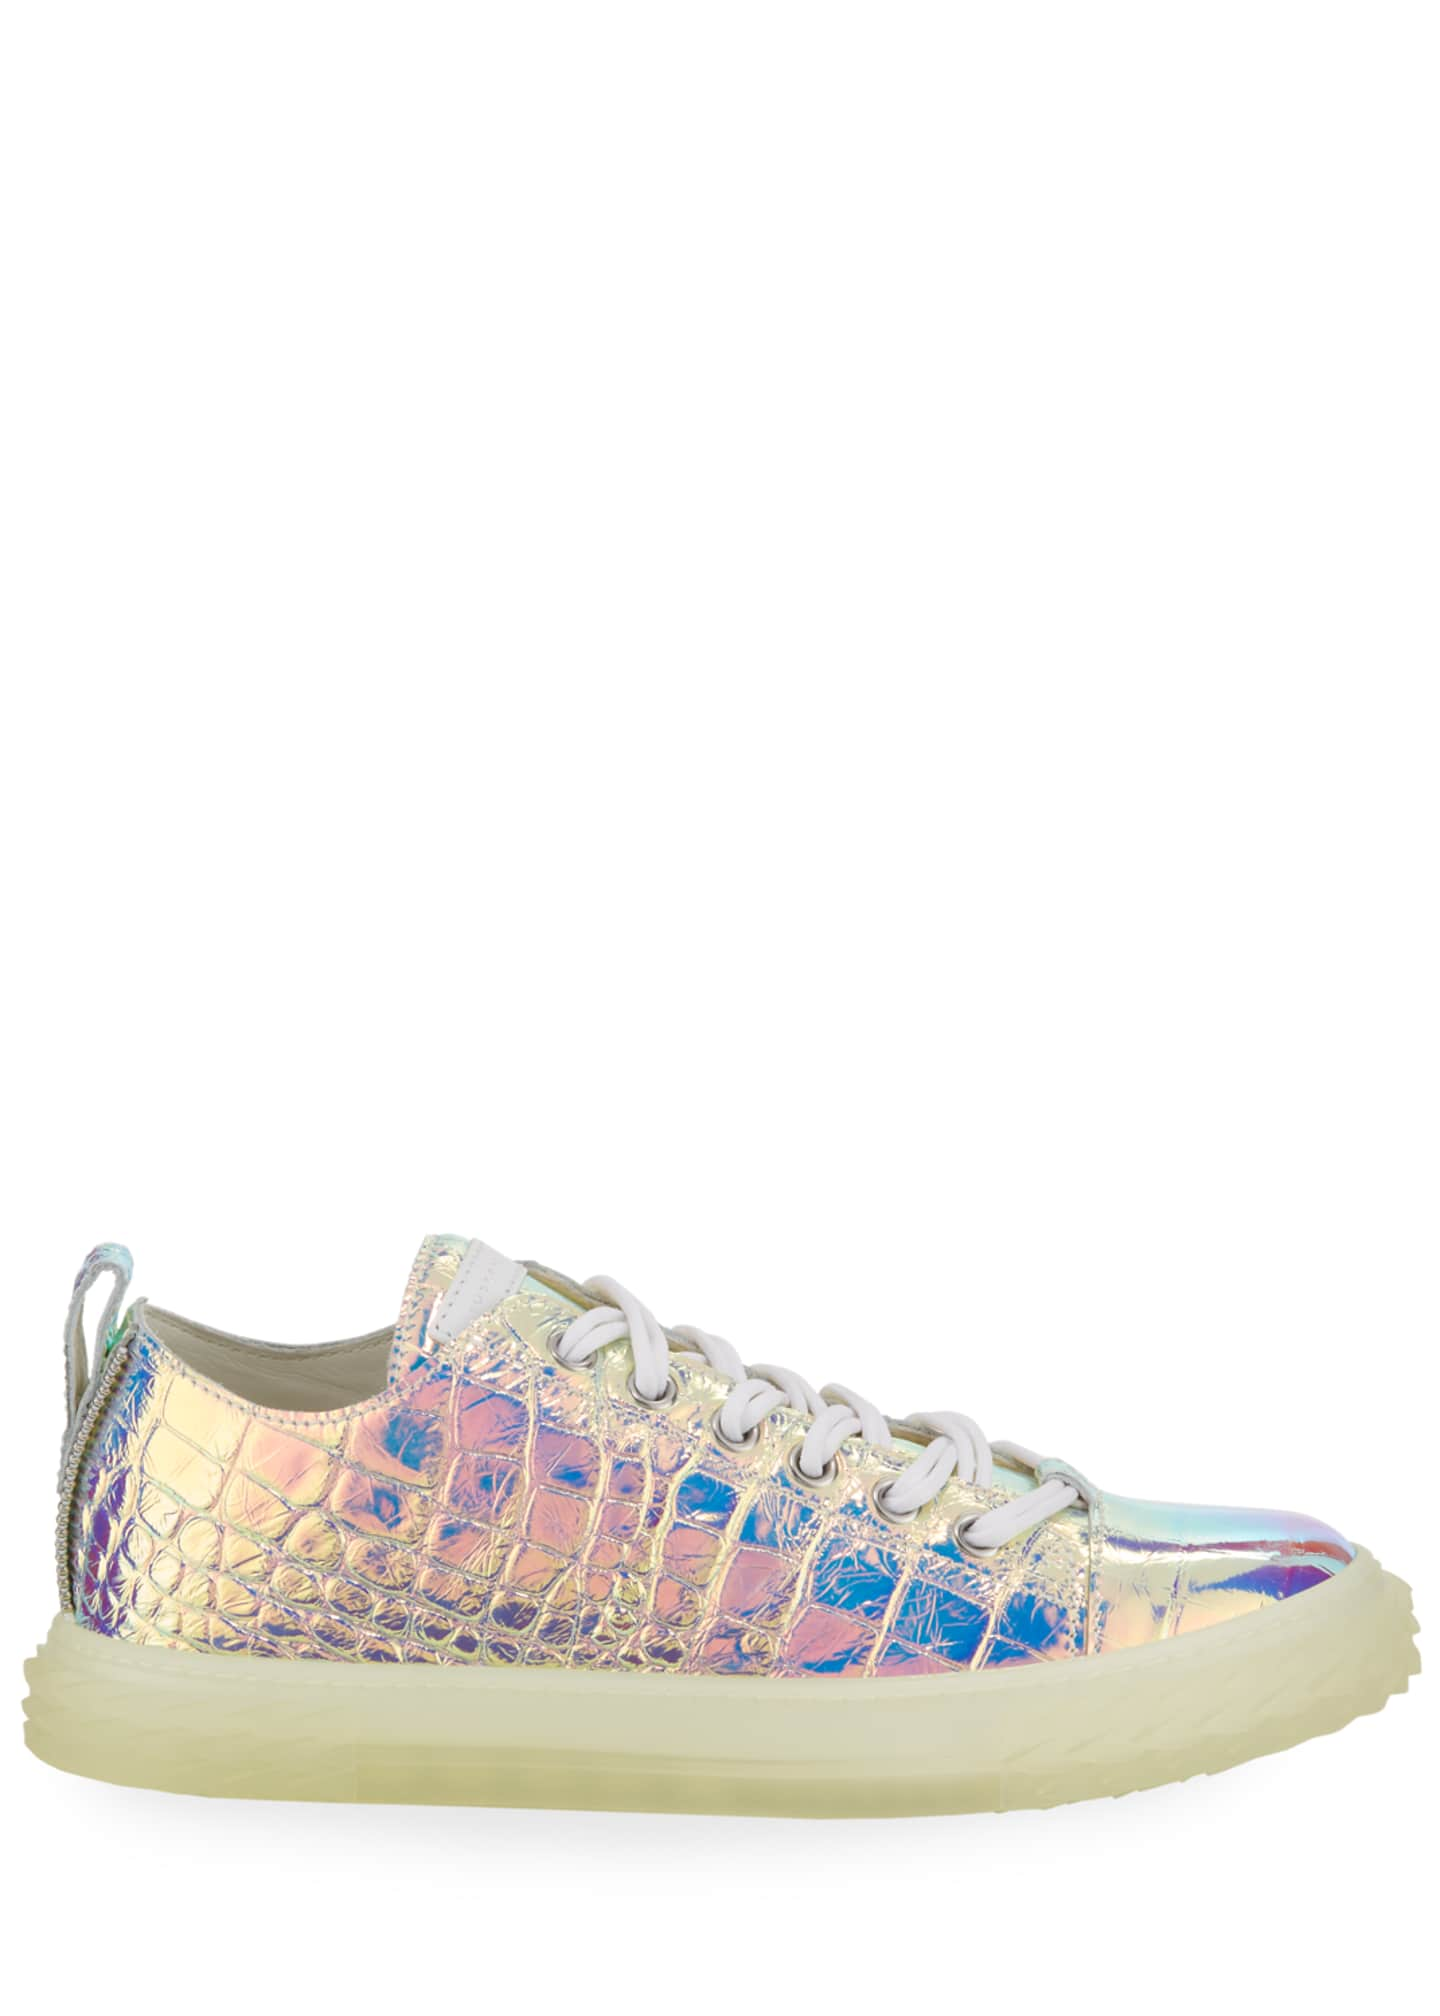 Image 3 of 4: Men's Iridescent Croc-Embossed Sneakers